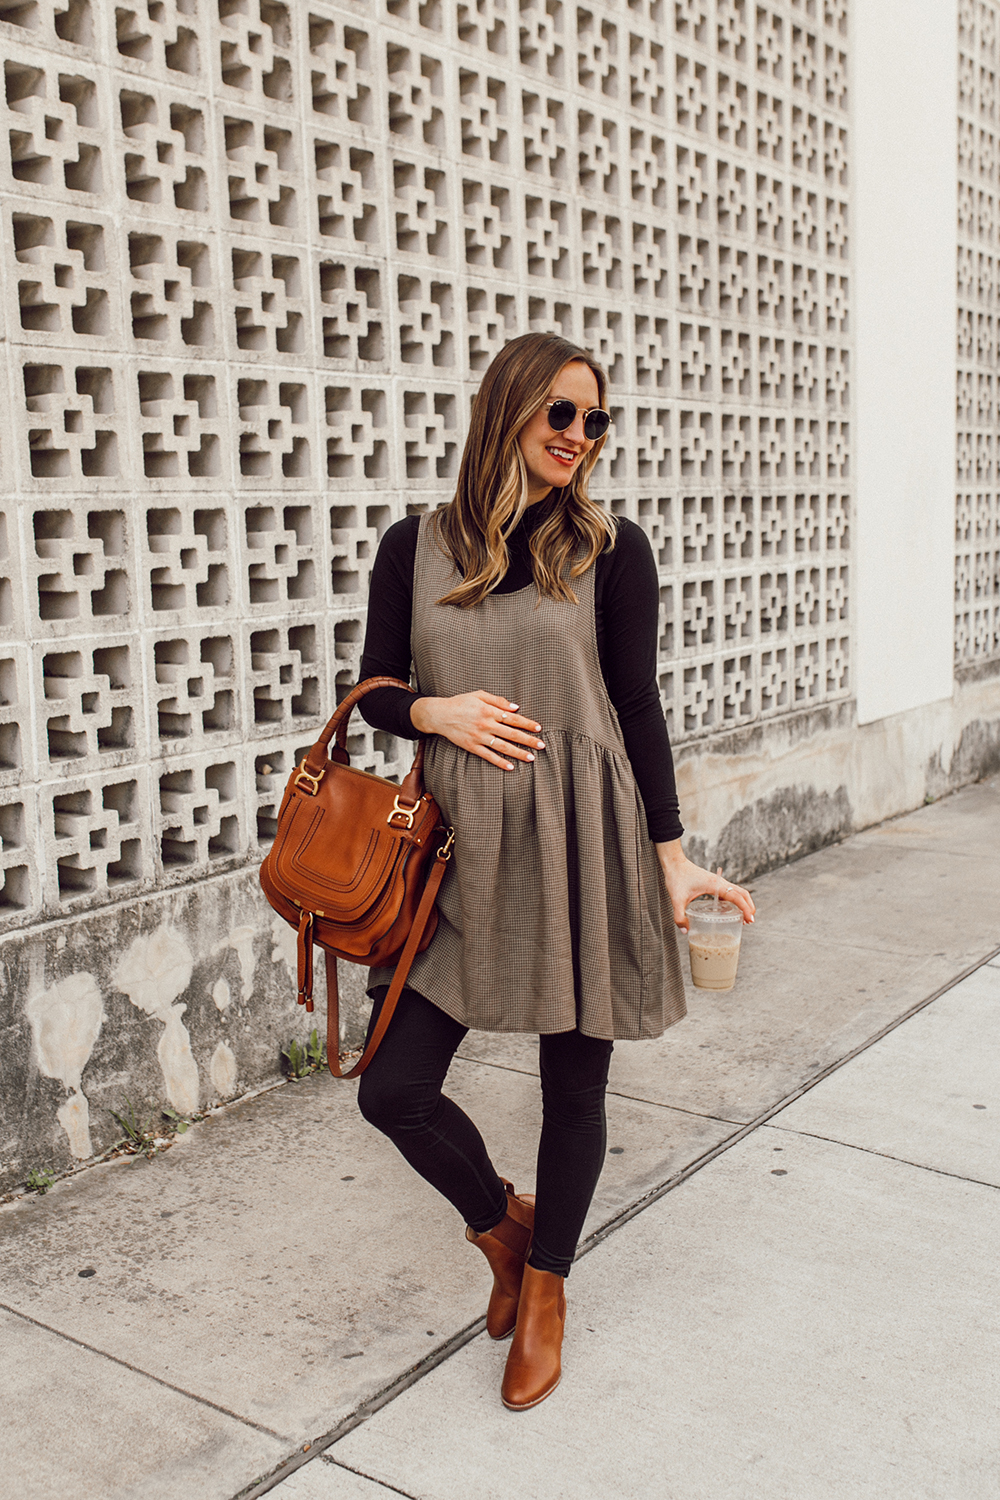 livvyland-blog-olivia-watson-austin-texas-third-trimester-pregnancy-maternity-outfit-idea-chloe-marcie-medium-5